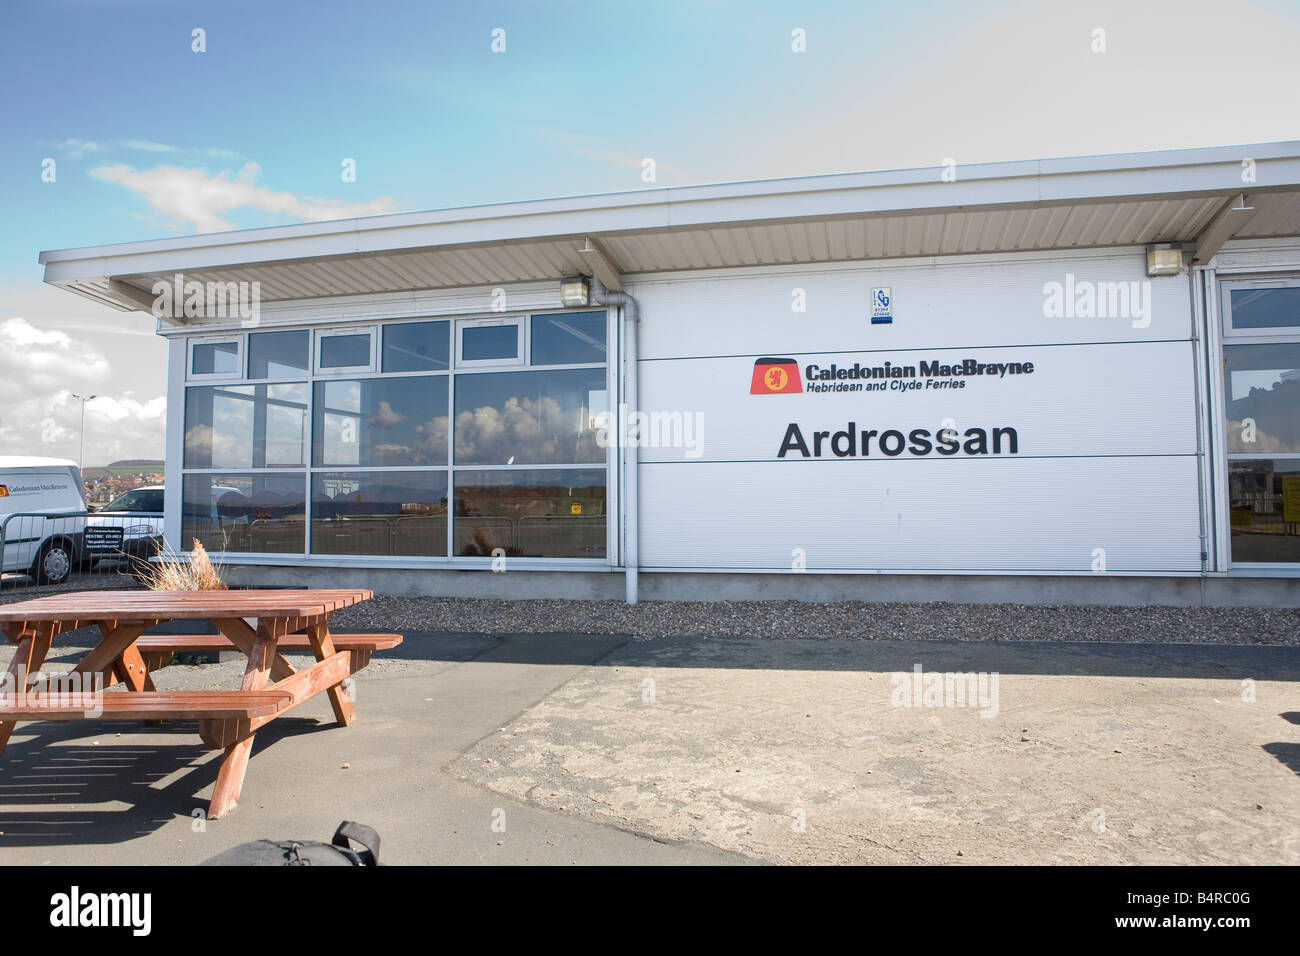 calmac ferry terminal in ardrossan on a rare sunny day - Stock Image